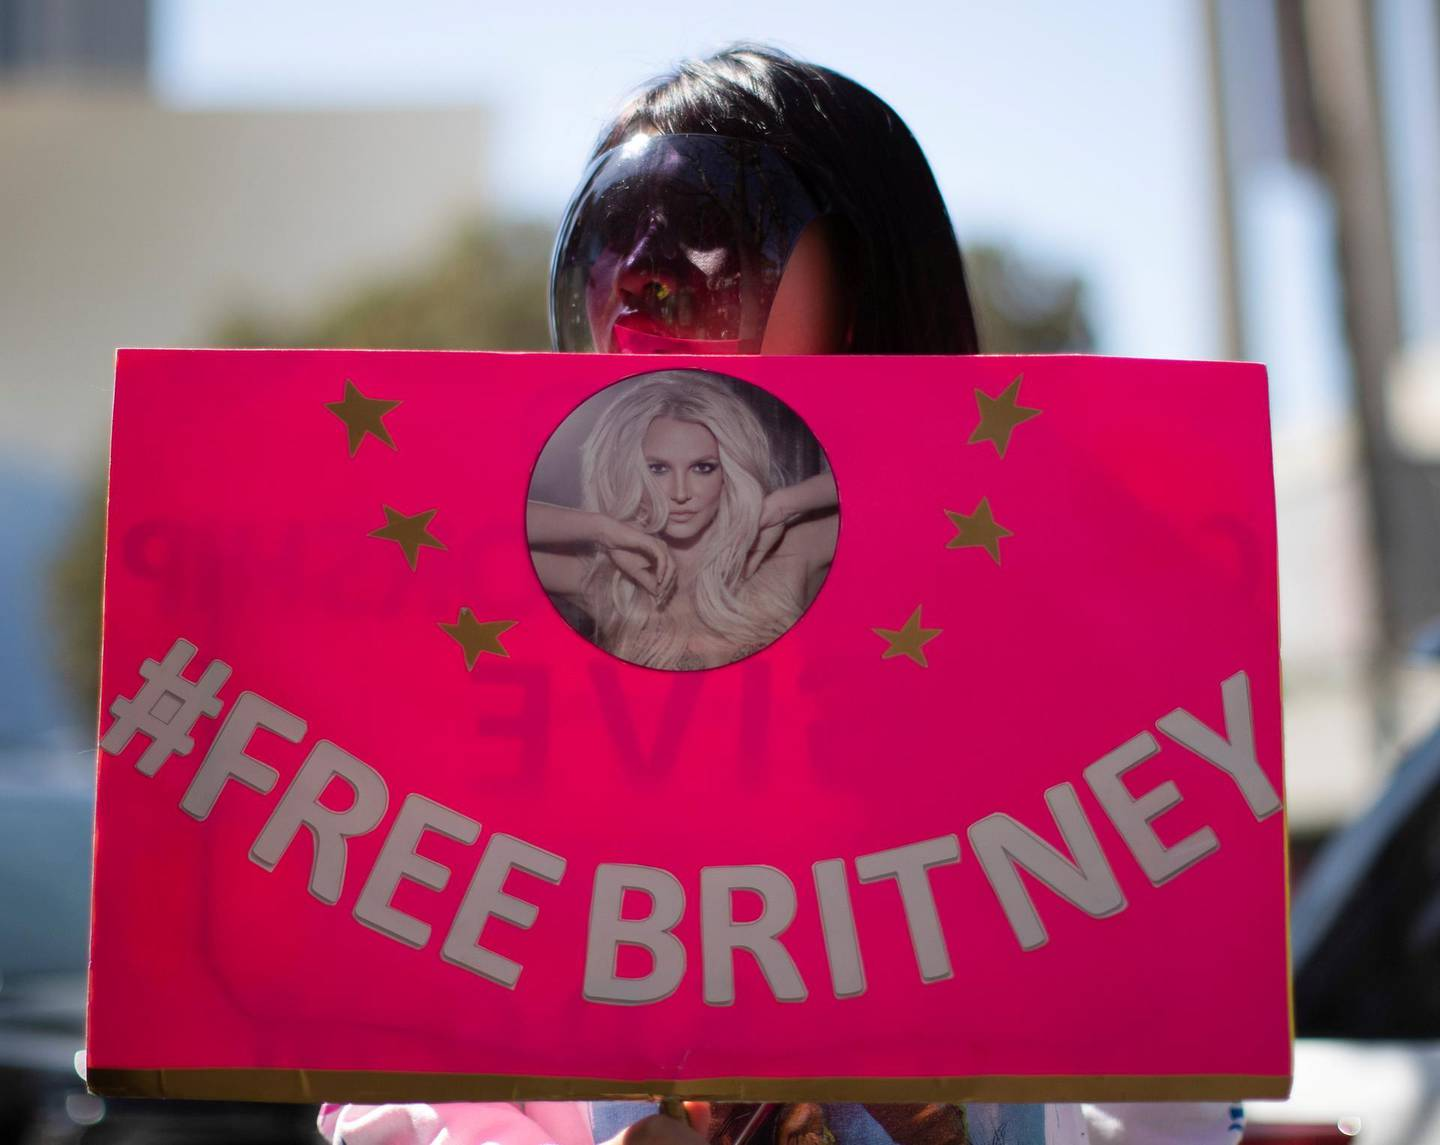 FILE PHOTO: A supporter wearing a personal protective face shield holds a sign while rallying for pop star Britney Spears during a conservatorship case hearing at Stanley Mosk Courthouse in Los Angeles, California, U.S., March 17, 2021.  REUTERS/Mario Anzuoni/File Photo